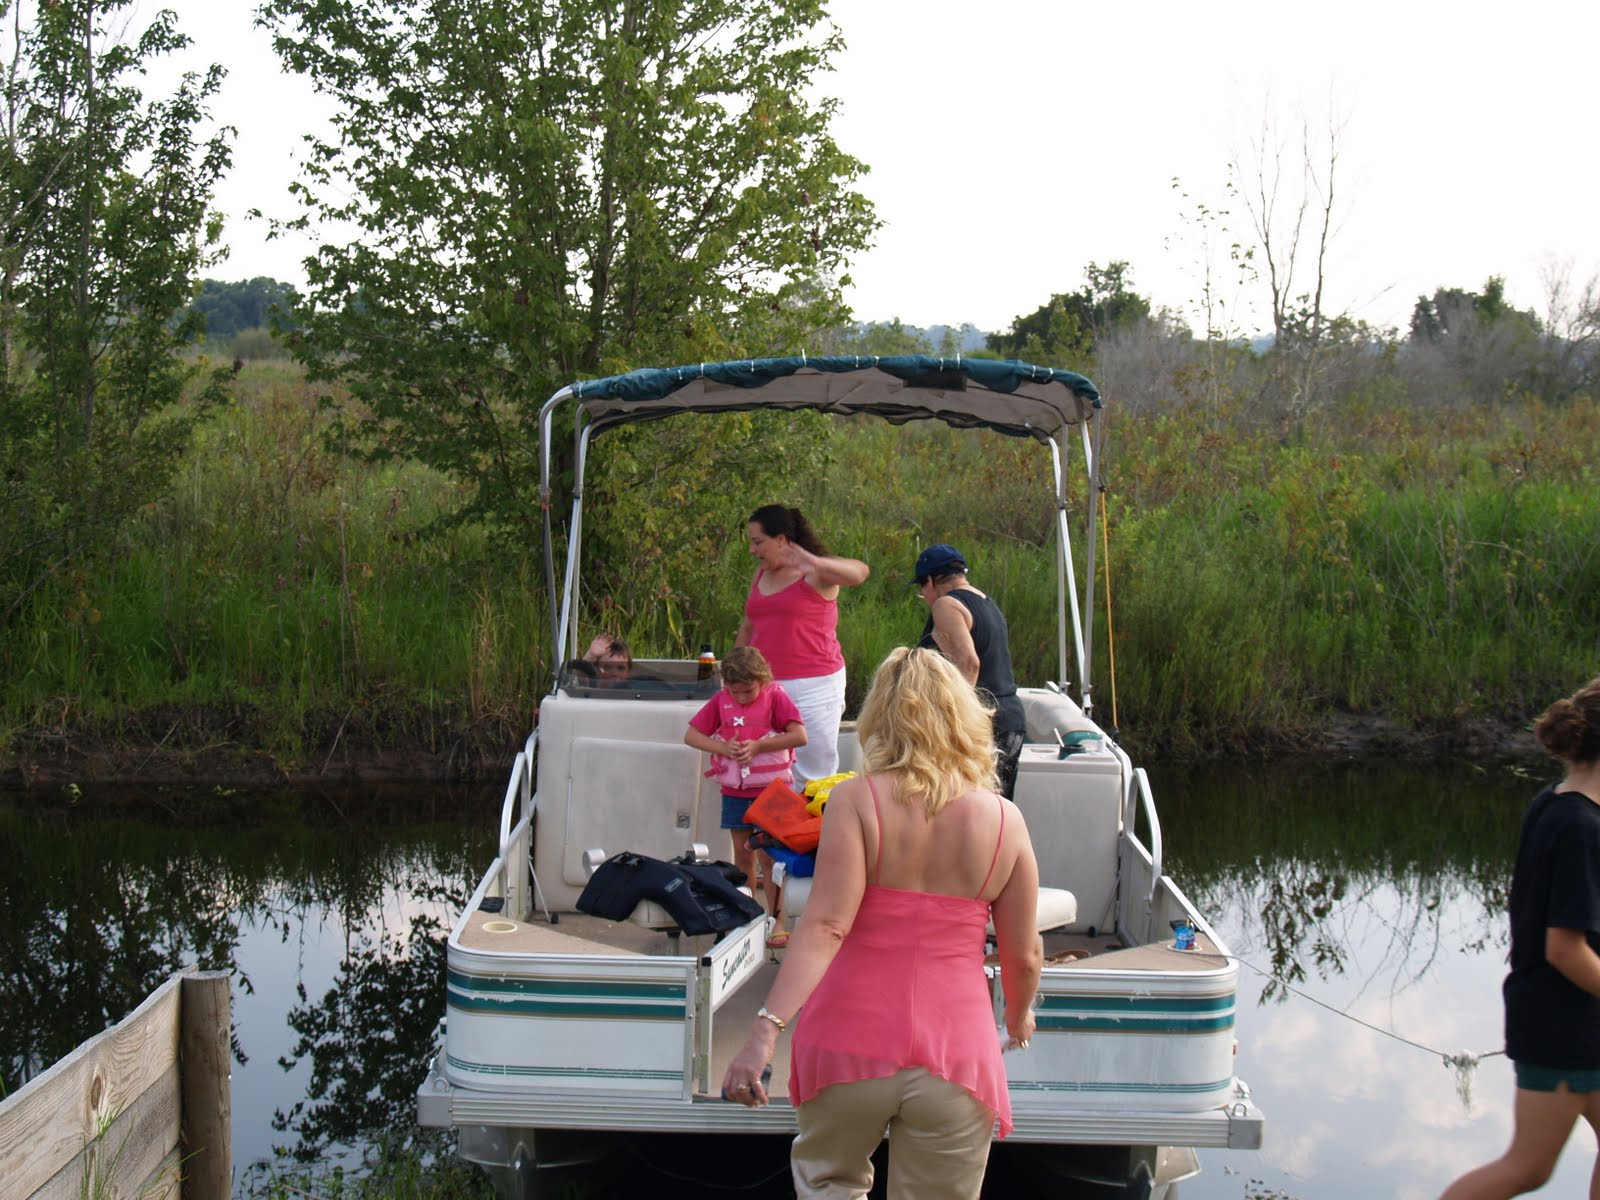 hight resolution of when we bought our home in 2005 we inherited a 1996 monark suncaster pontoon boat that made the boat roughly 10 years old and every component on it was